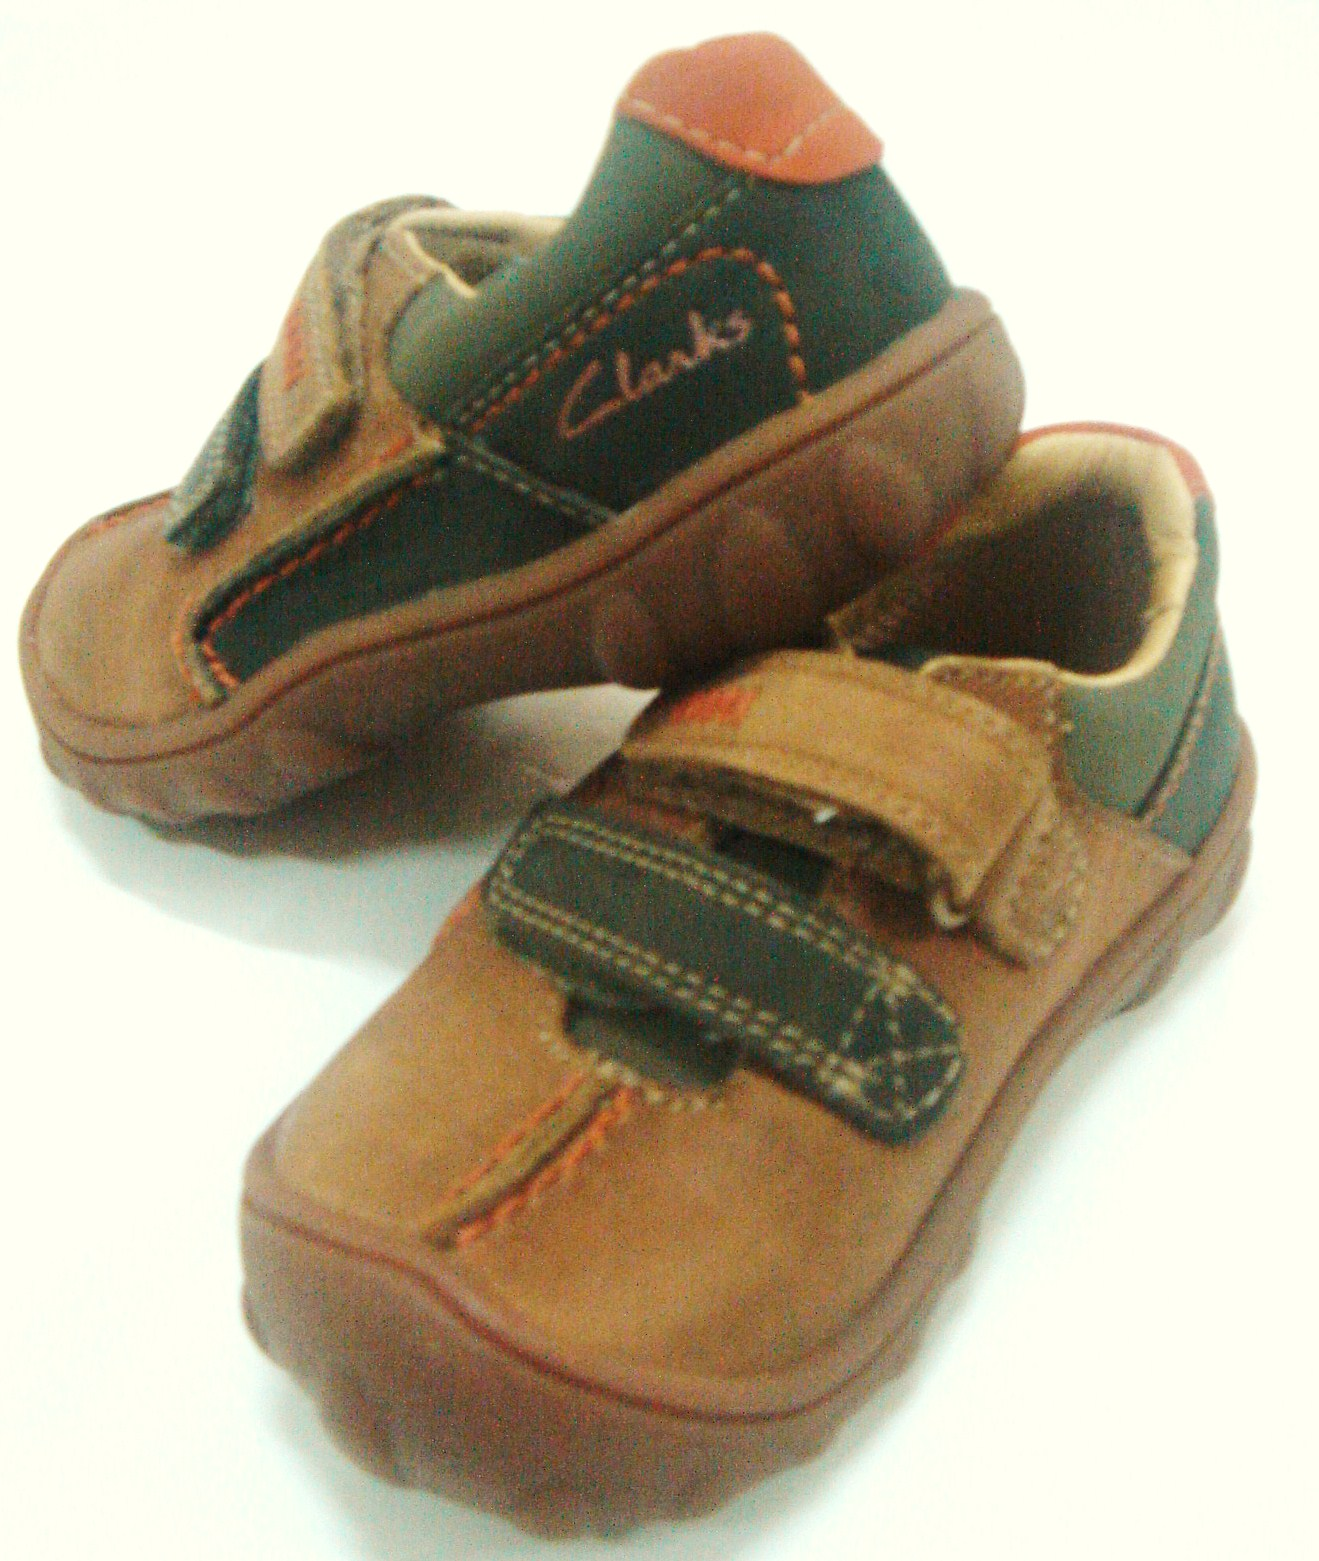 clarks shoes for boys